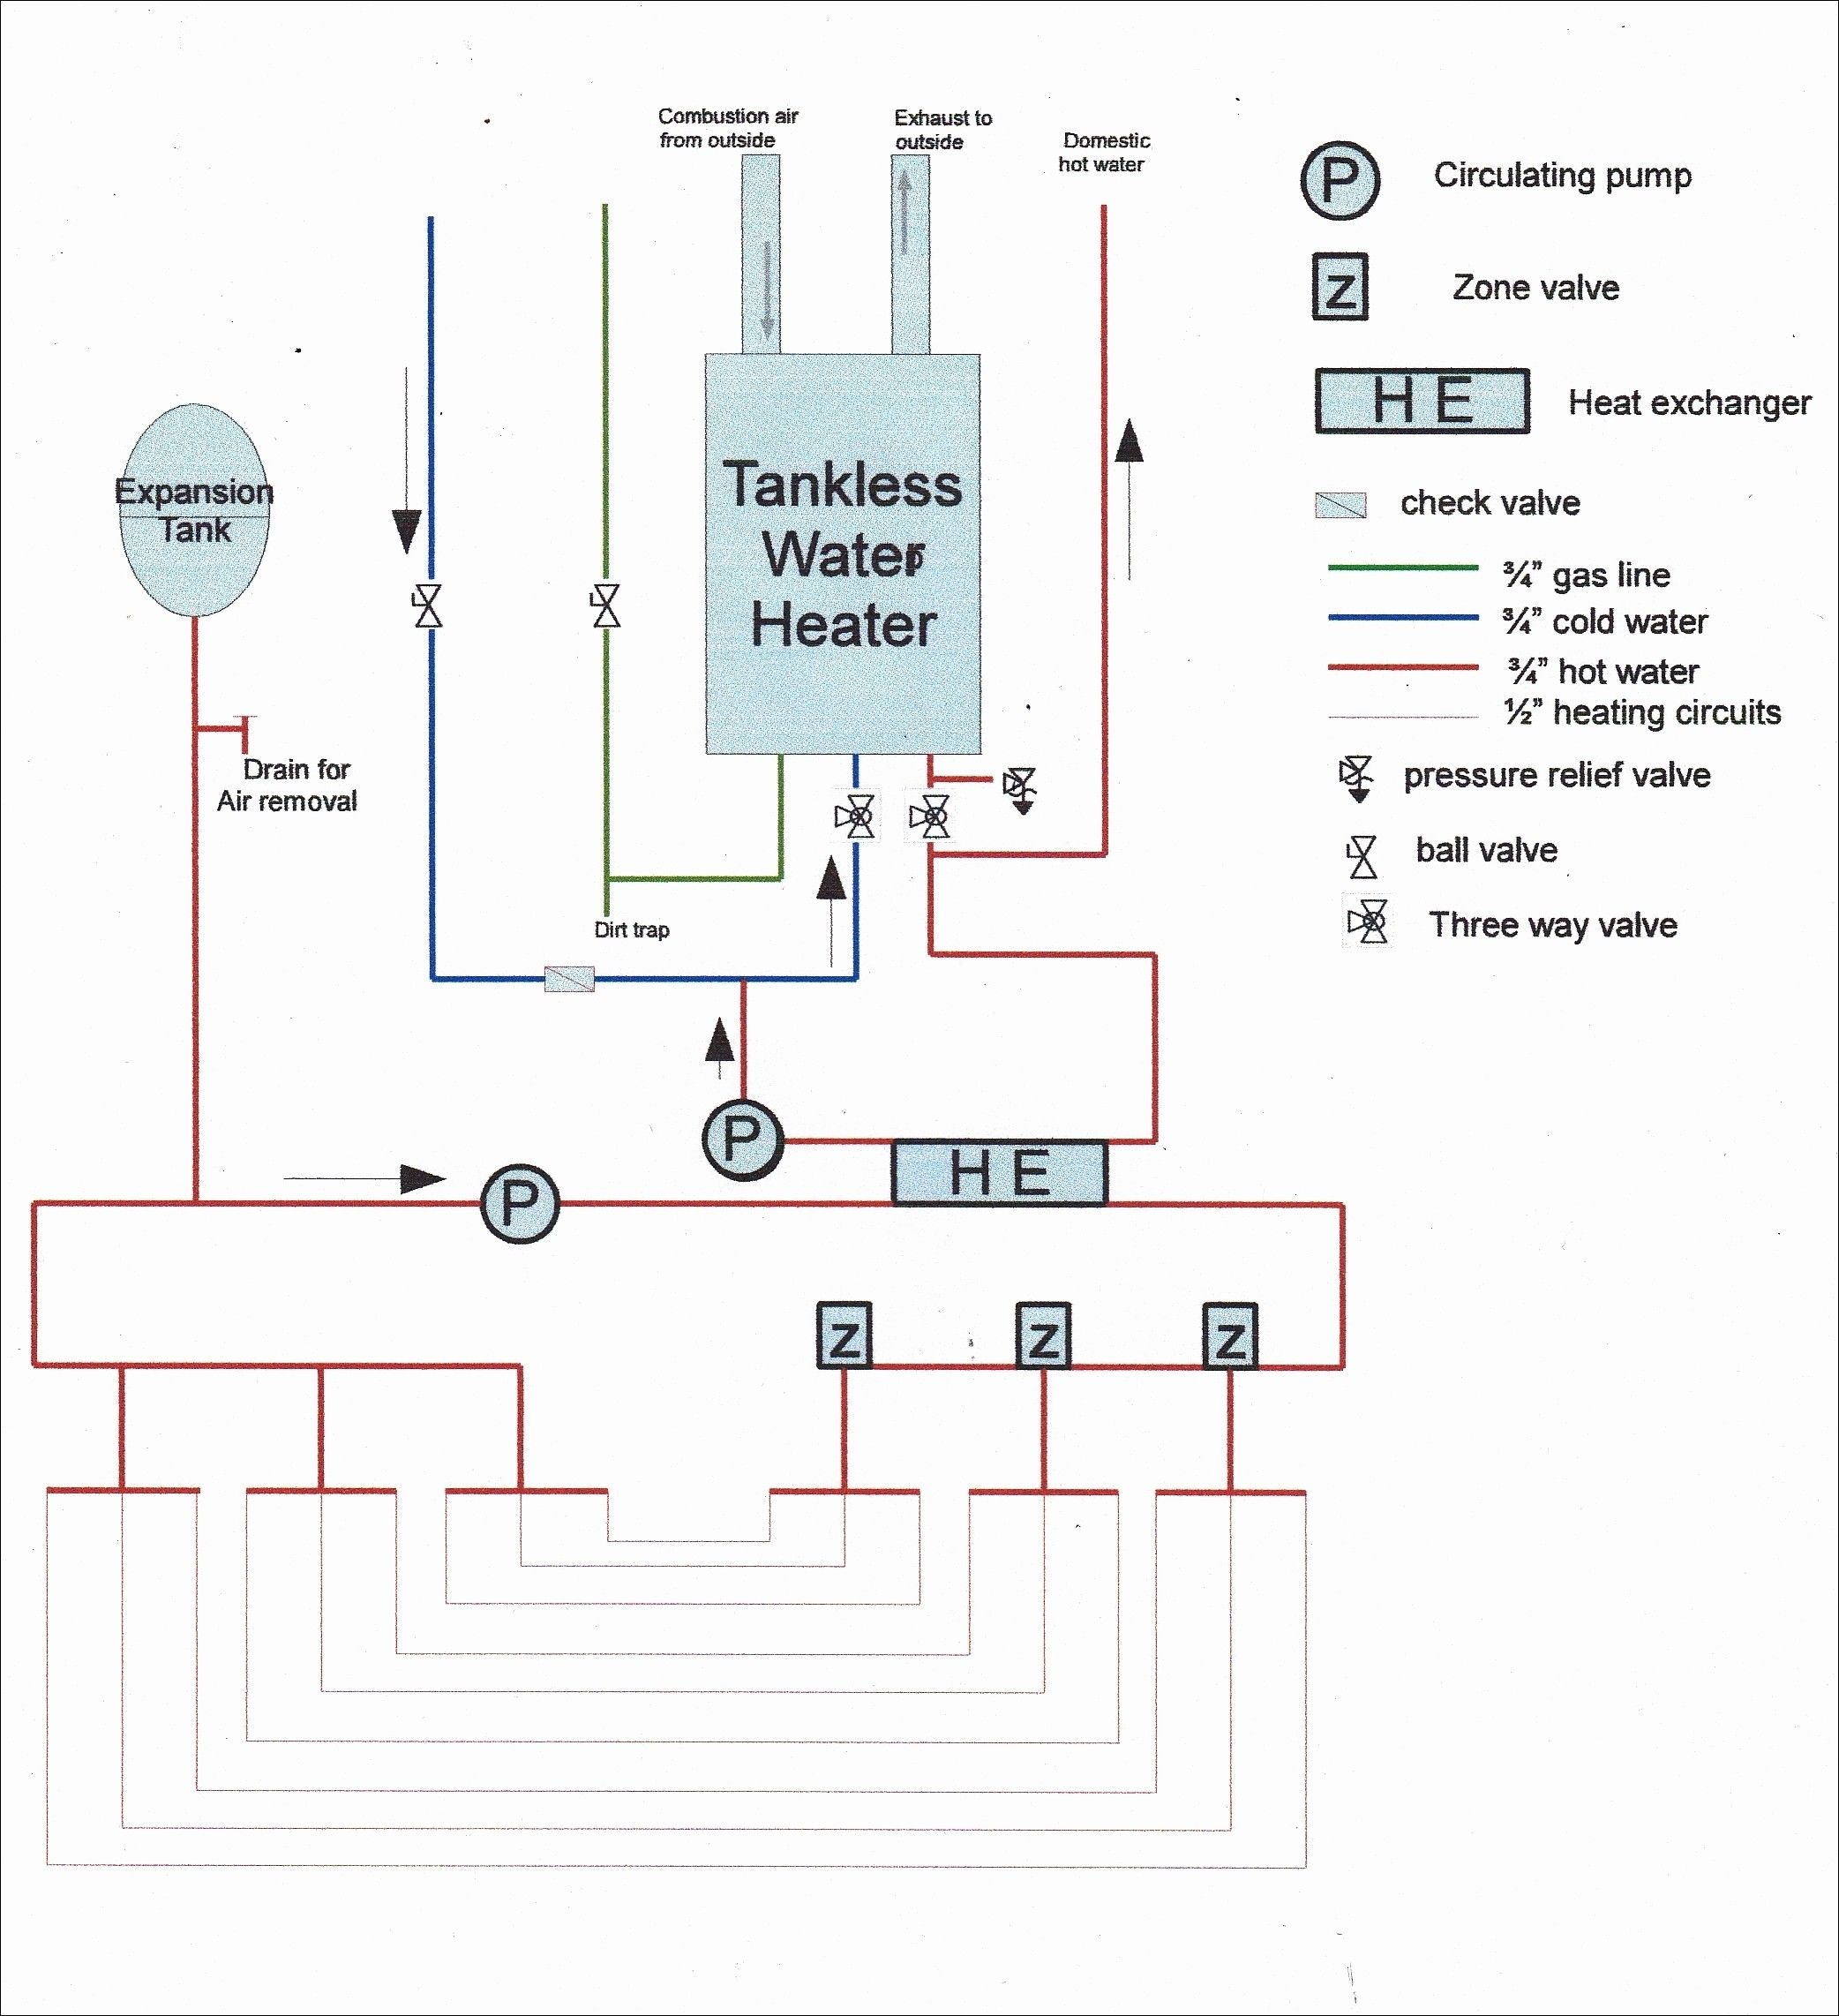 New Wiring Diagram For Thermostat On Baseboard Heater Diagram Diagramtemplate Diagramsample